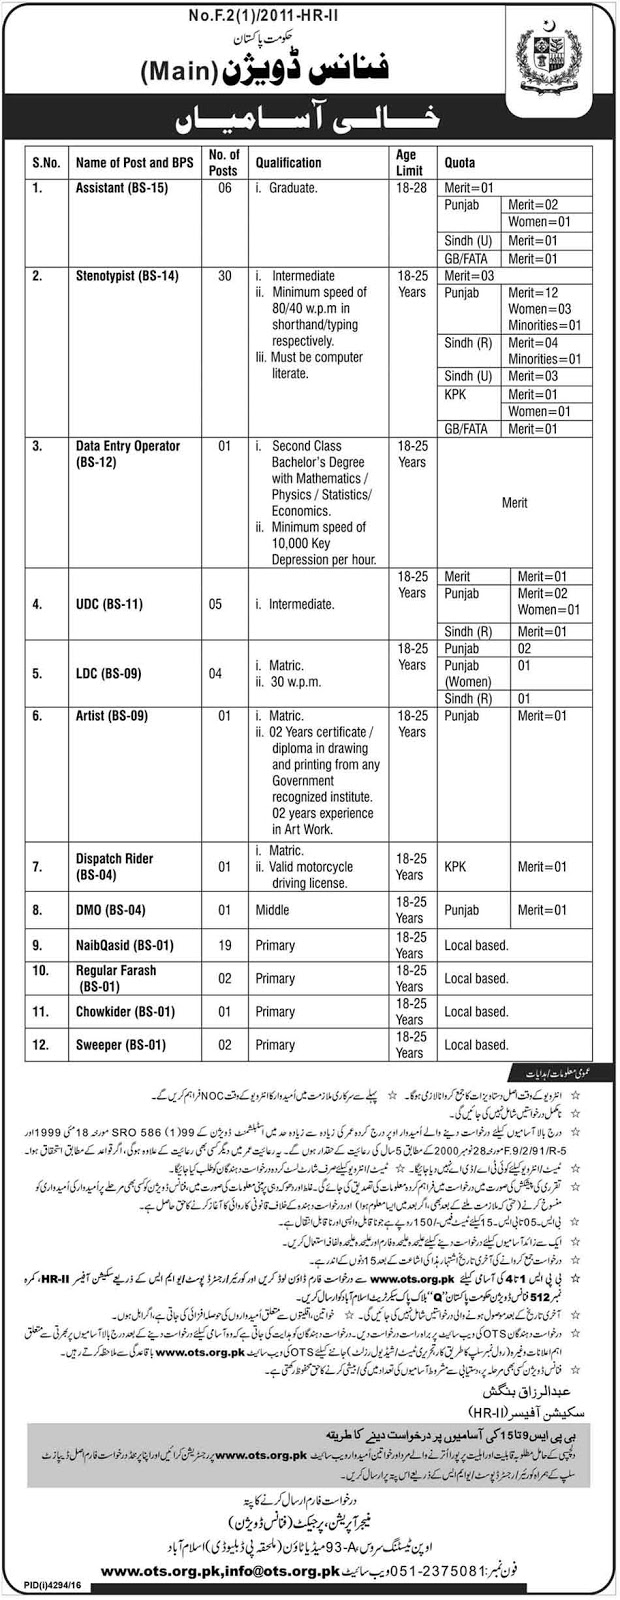 Ministry of finance division Islamabad jobs 20 feb 2017